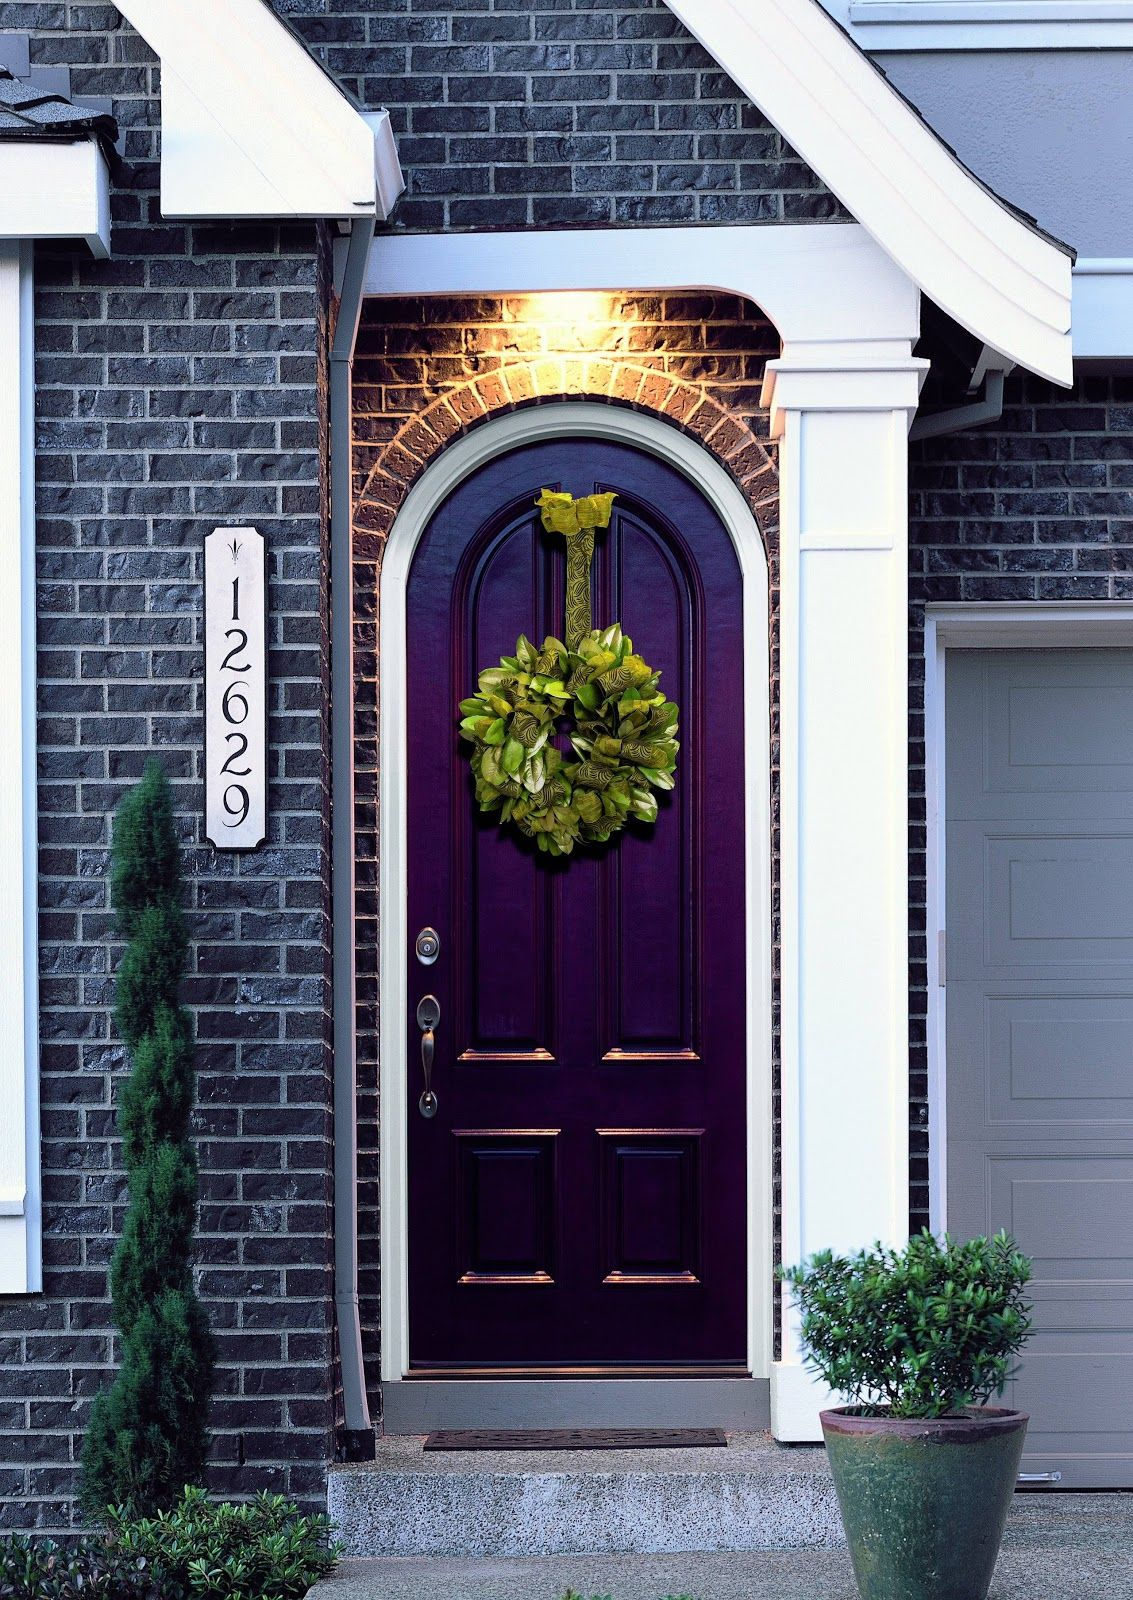 Eggplant Purple Door On Grey House, Nice Possibility.